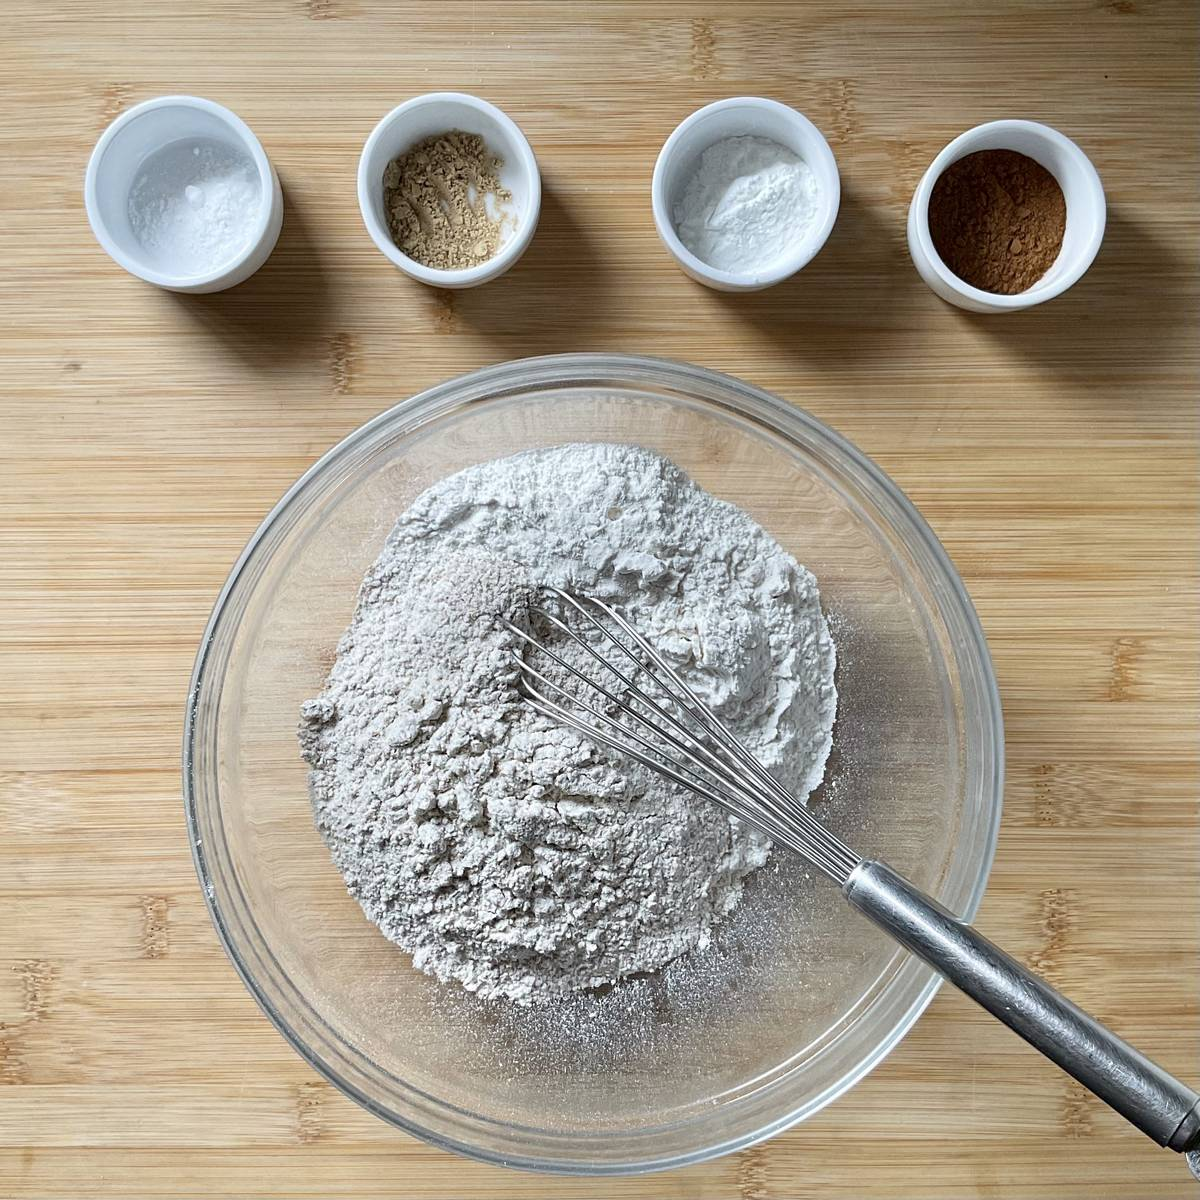 Dry ingredients to make zucchini muffins are on a wooden board.